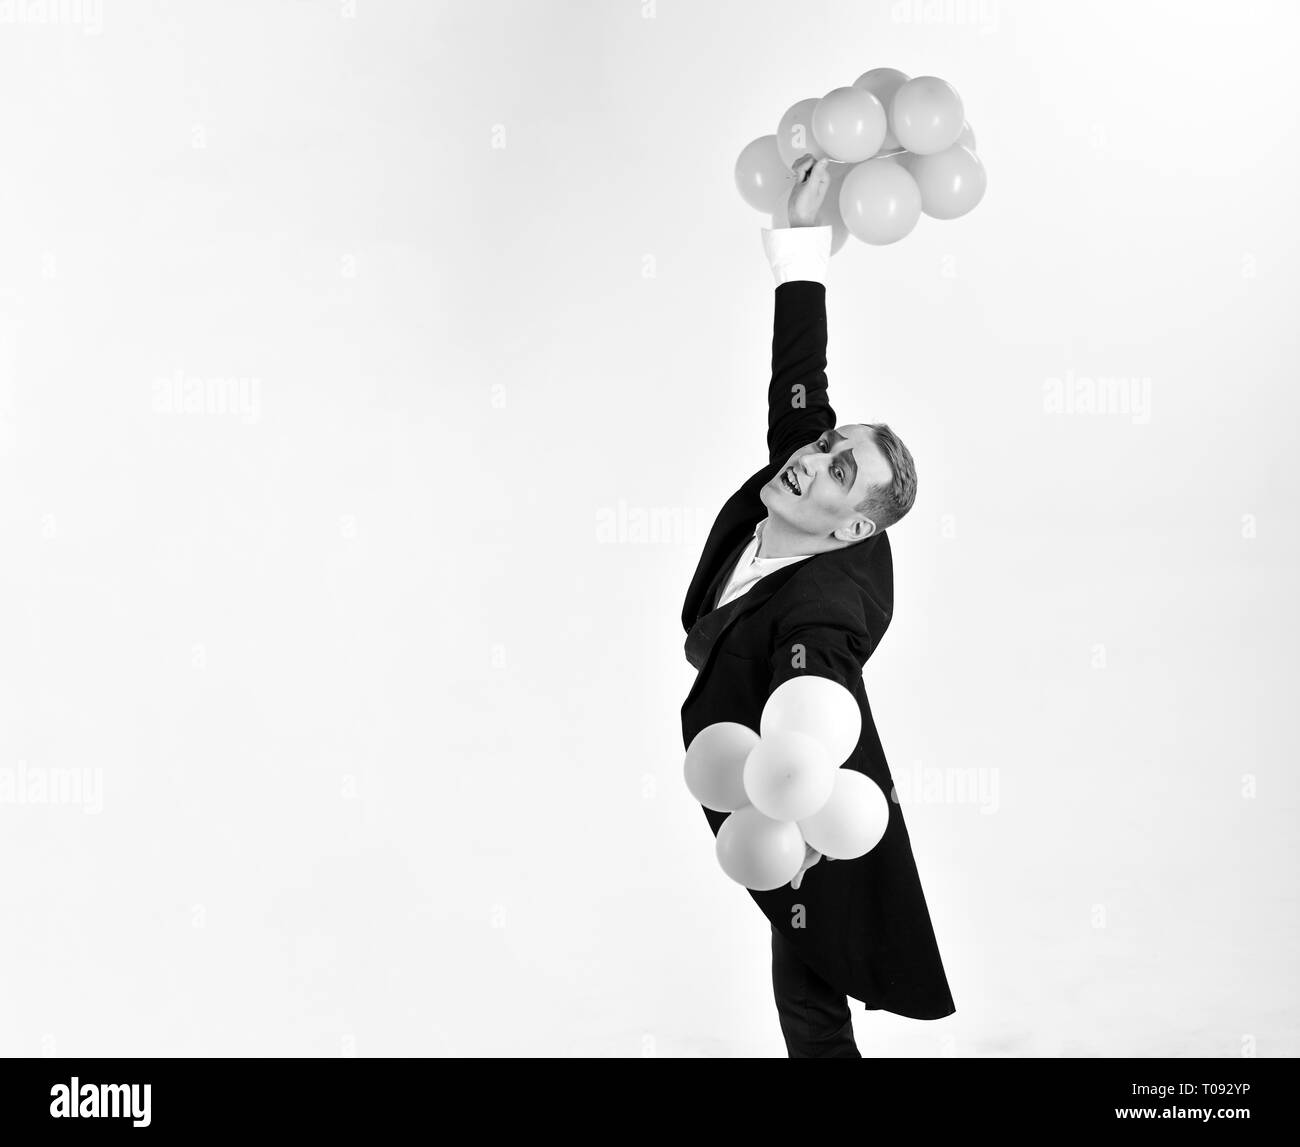 Happy birthday or anniversary celebration. Mime man with party balloons. Man with mime makeup on birthday party. Balloon artist. Holding festive - Stock Image